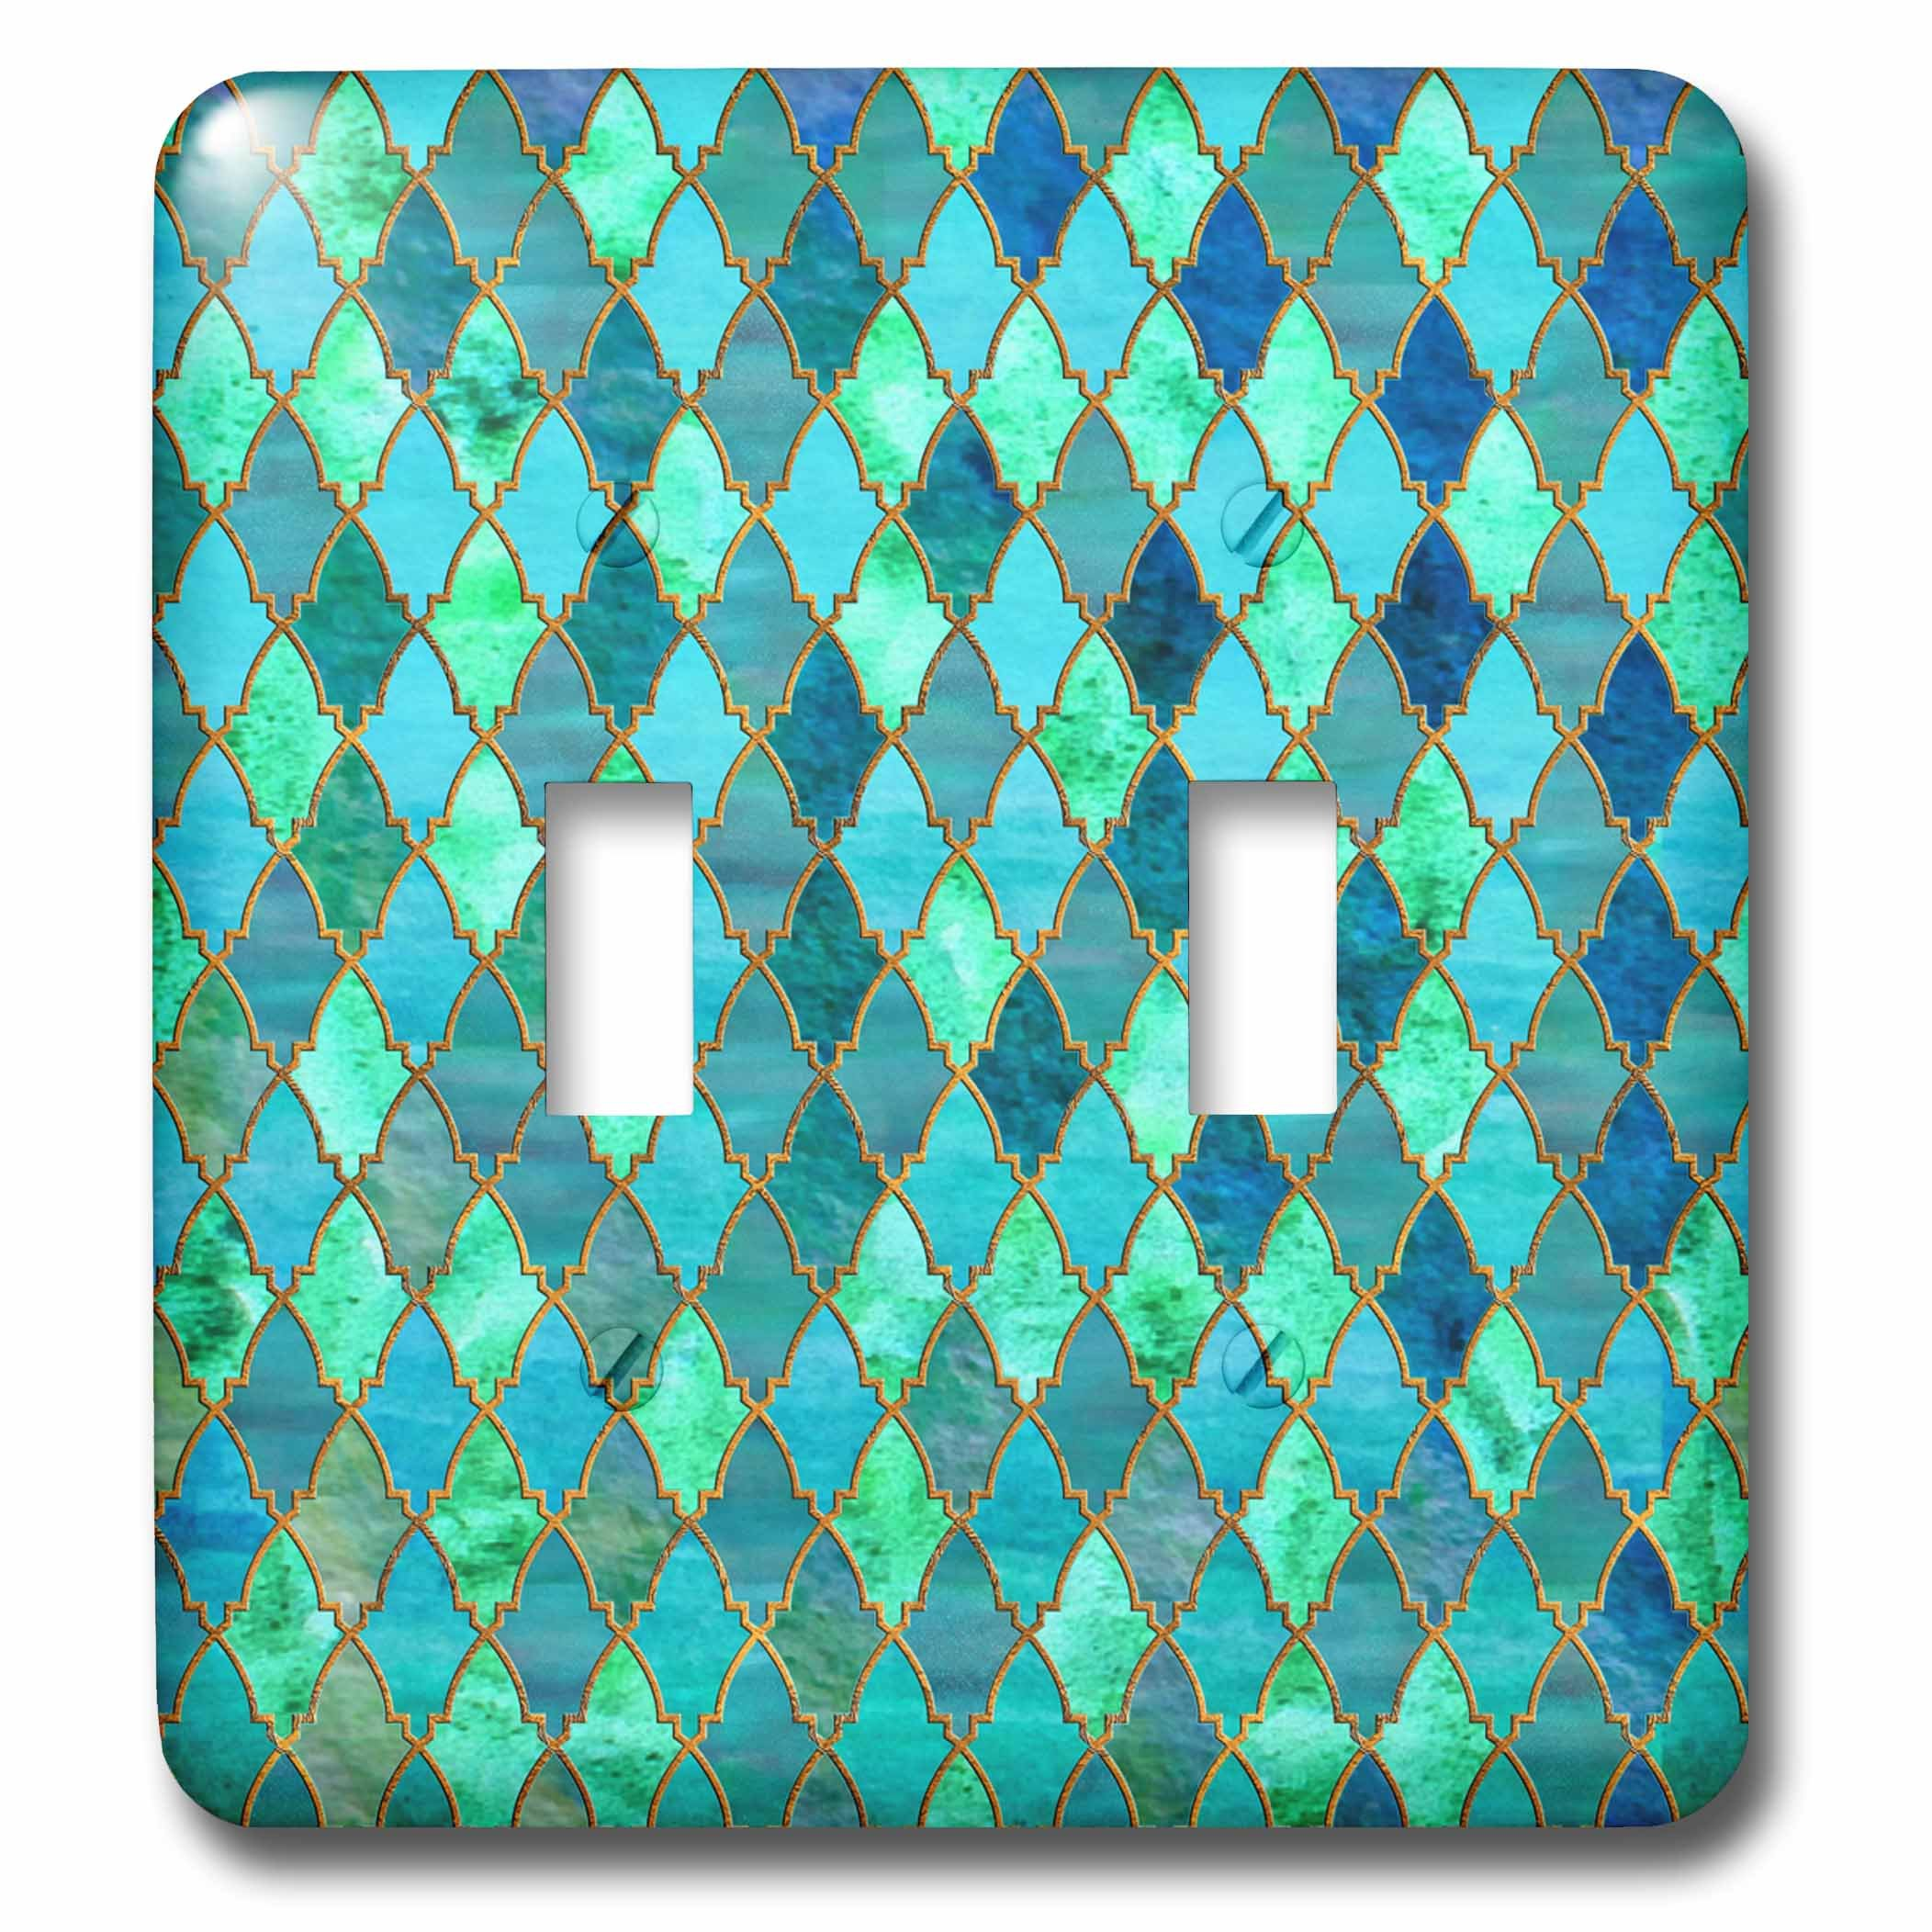 3dRose Uta Naumann Faux Glitter Pattern - Luxury Trendy Gold Green Teal Moroccan Arabic Quatrefoil Tile Pattern - Light Switch Covers - double toggle switch (lsp_268959_2) by 3dRose (Image #1)